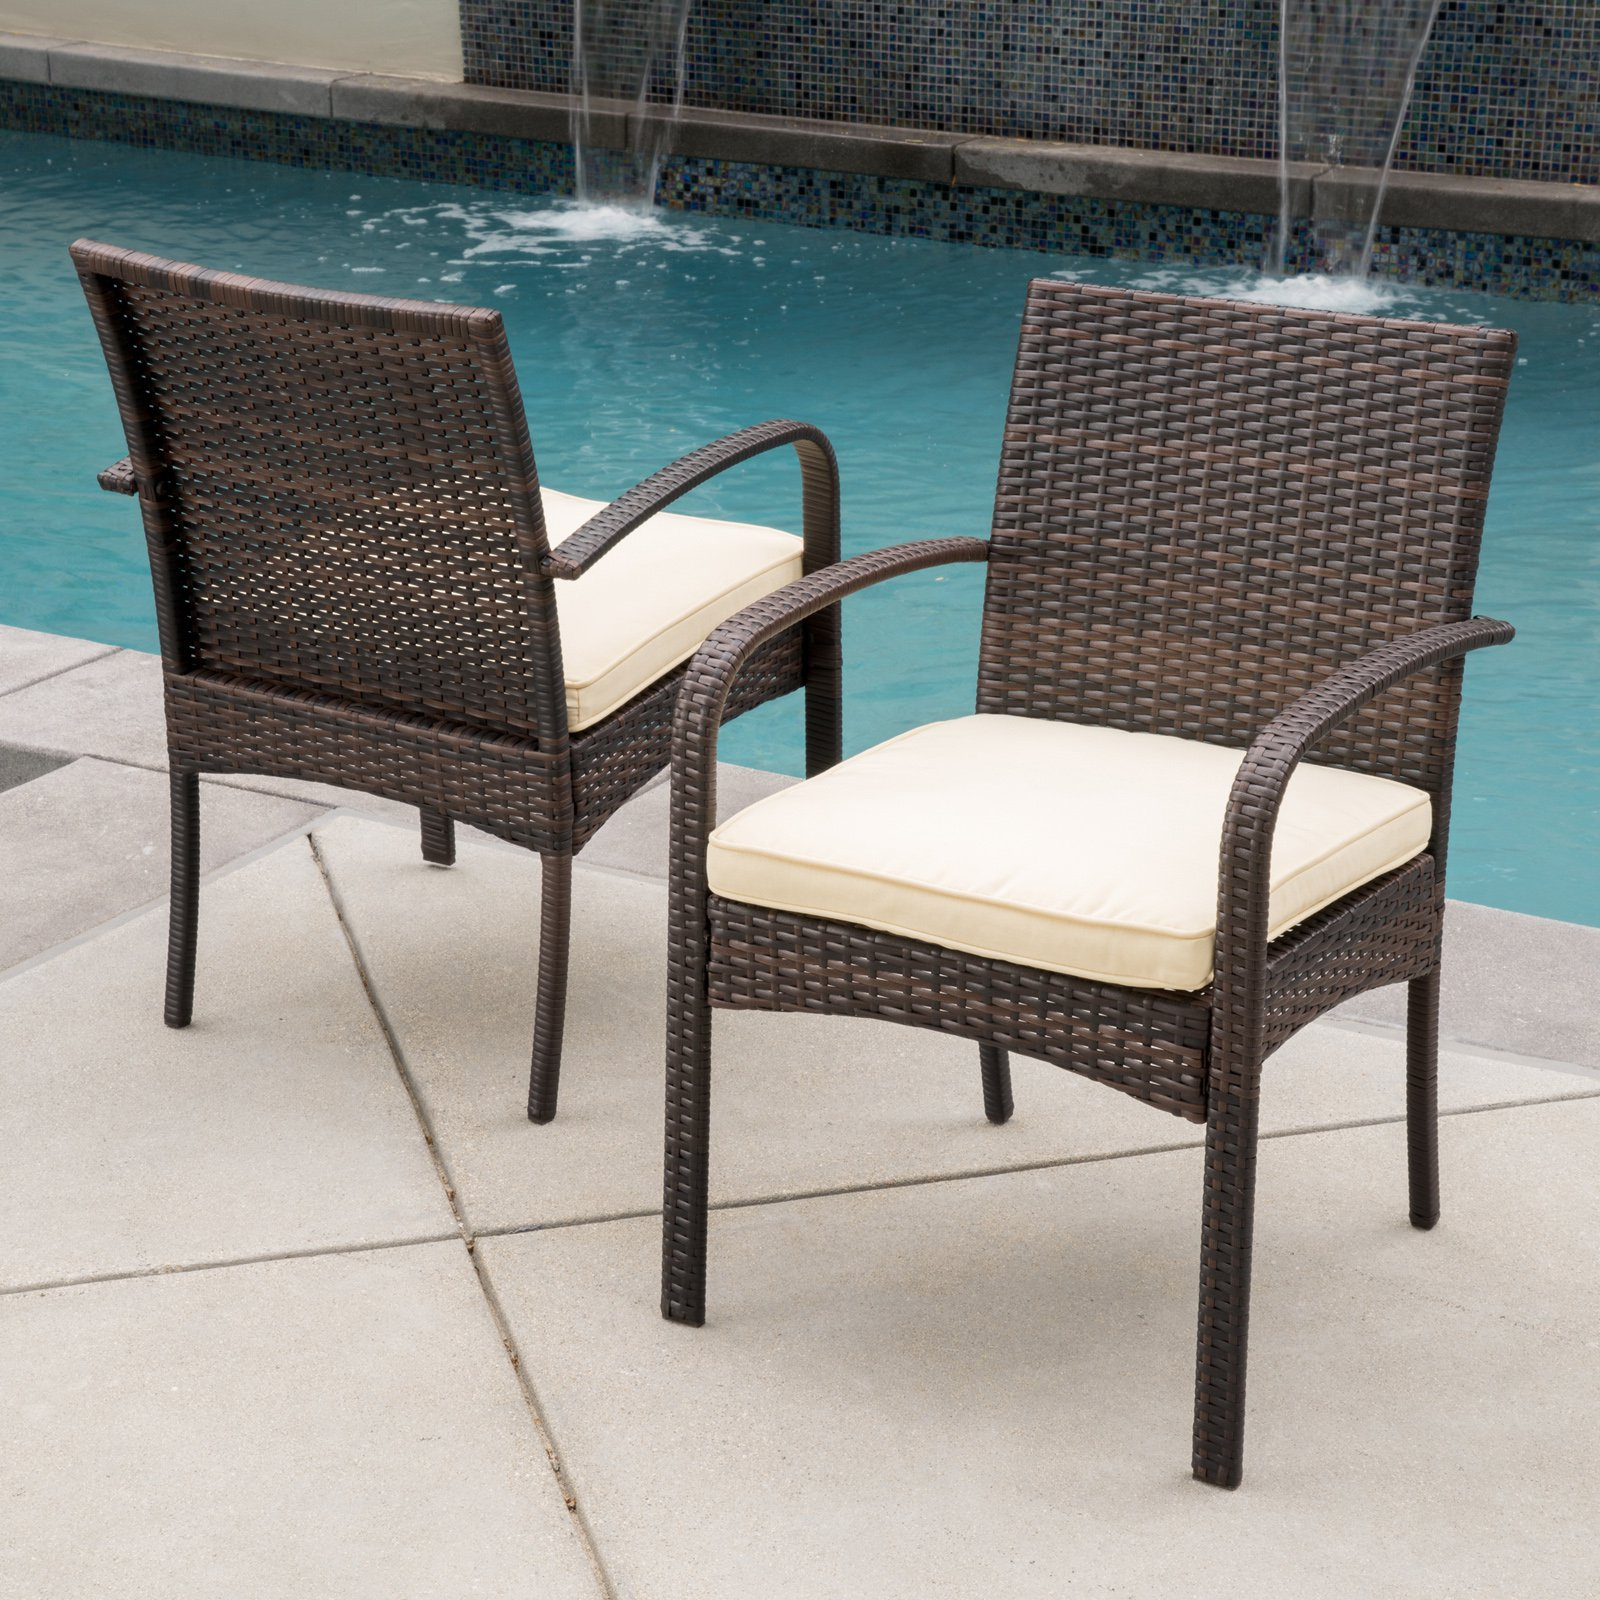 Garden Chair Patio Chairs And Stools Walmart